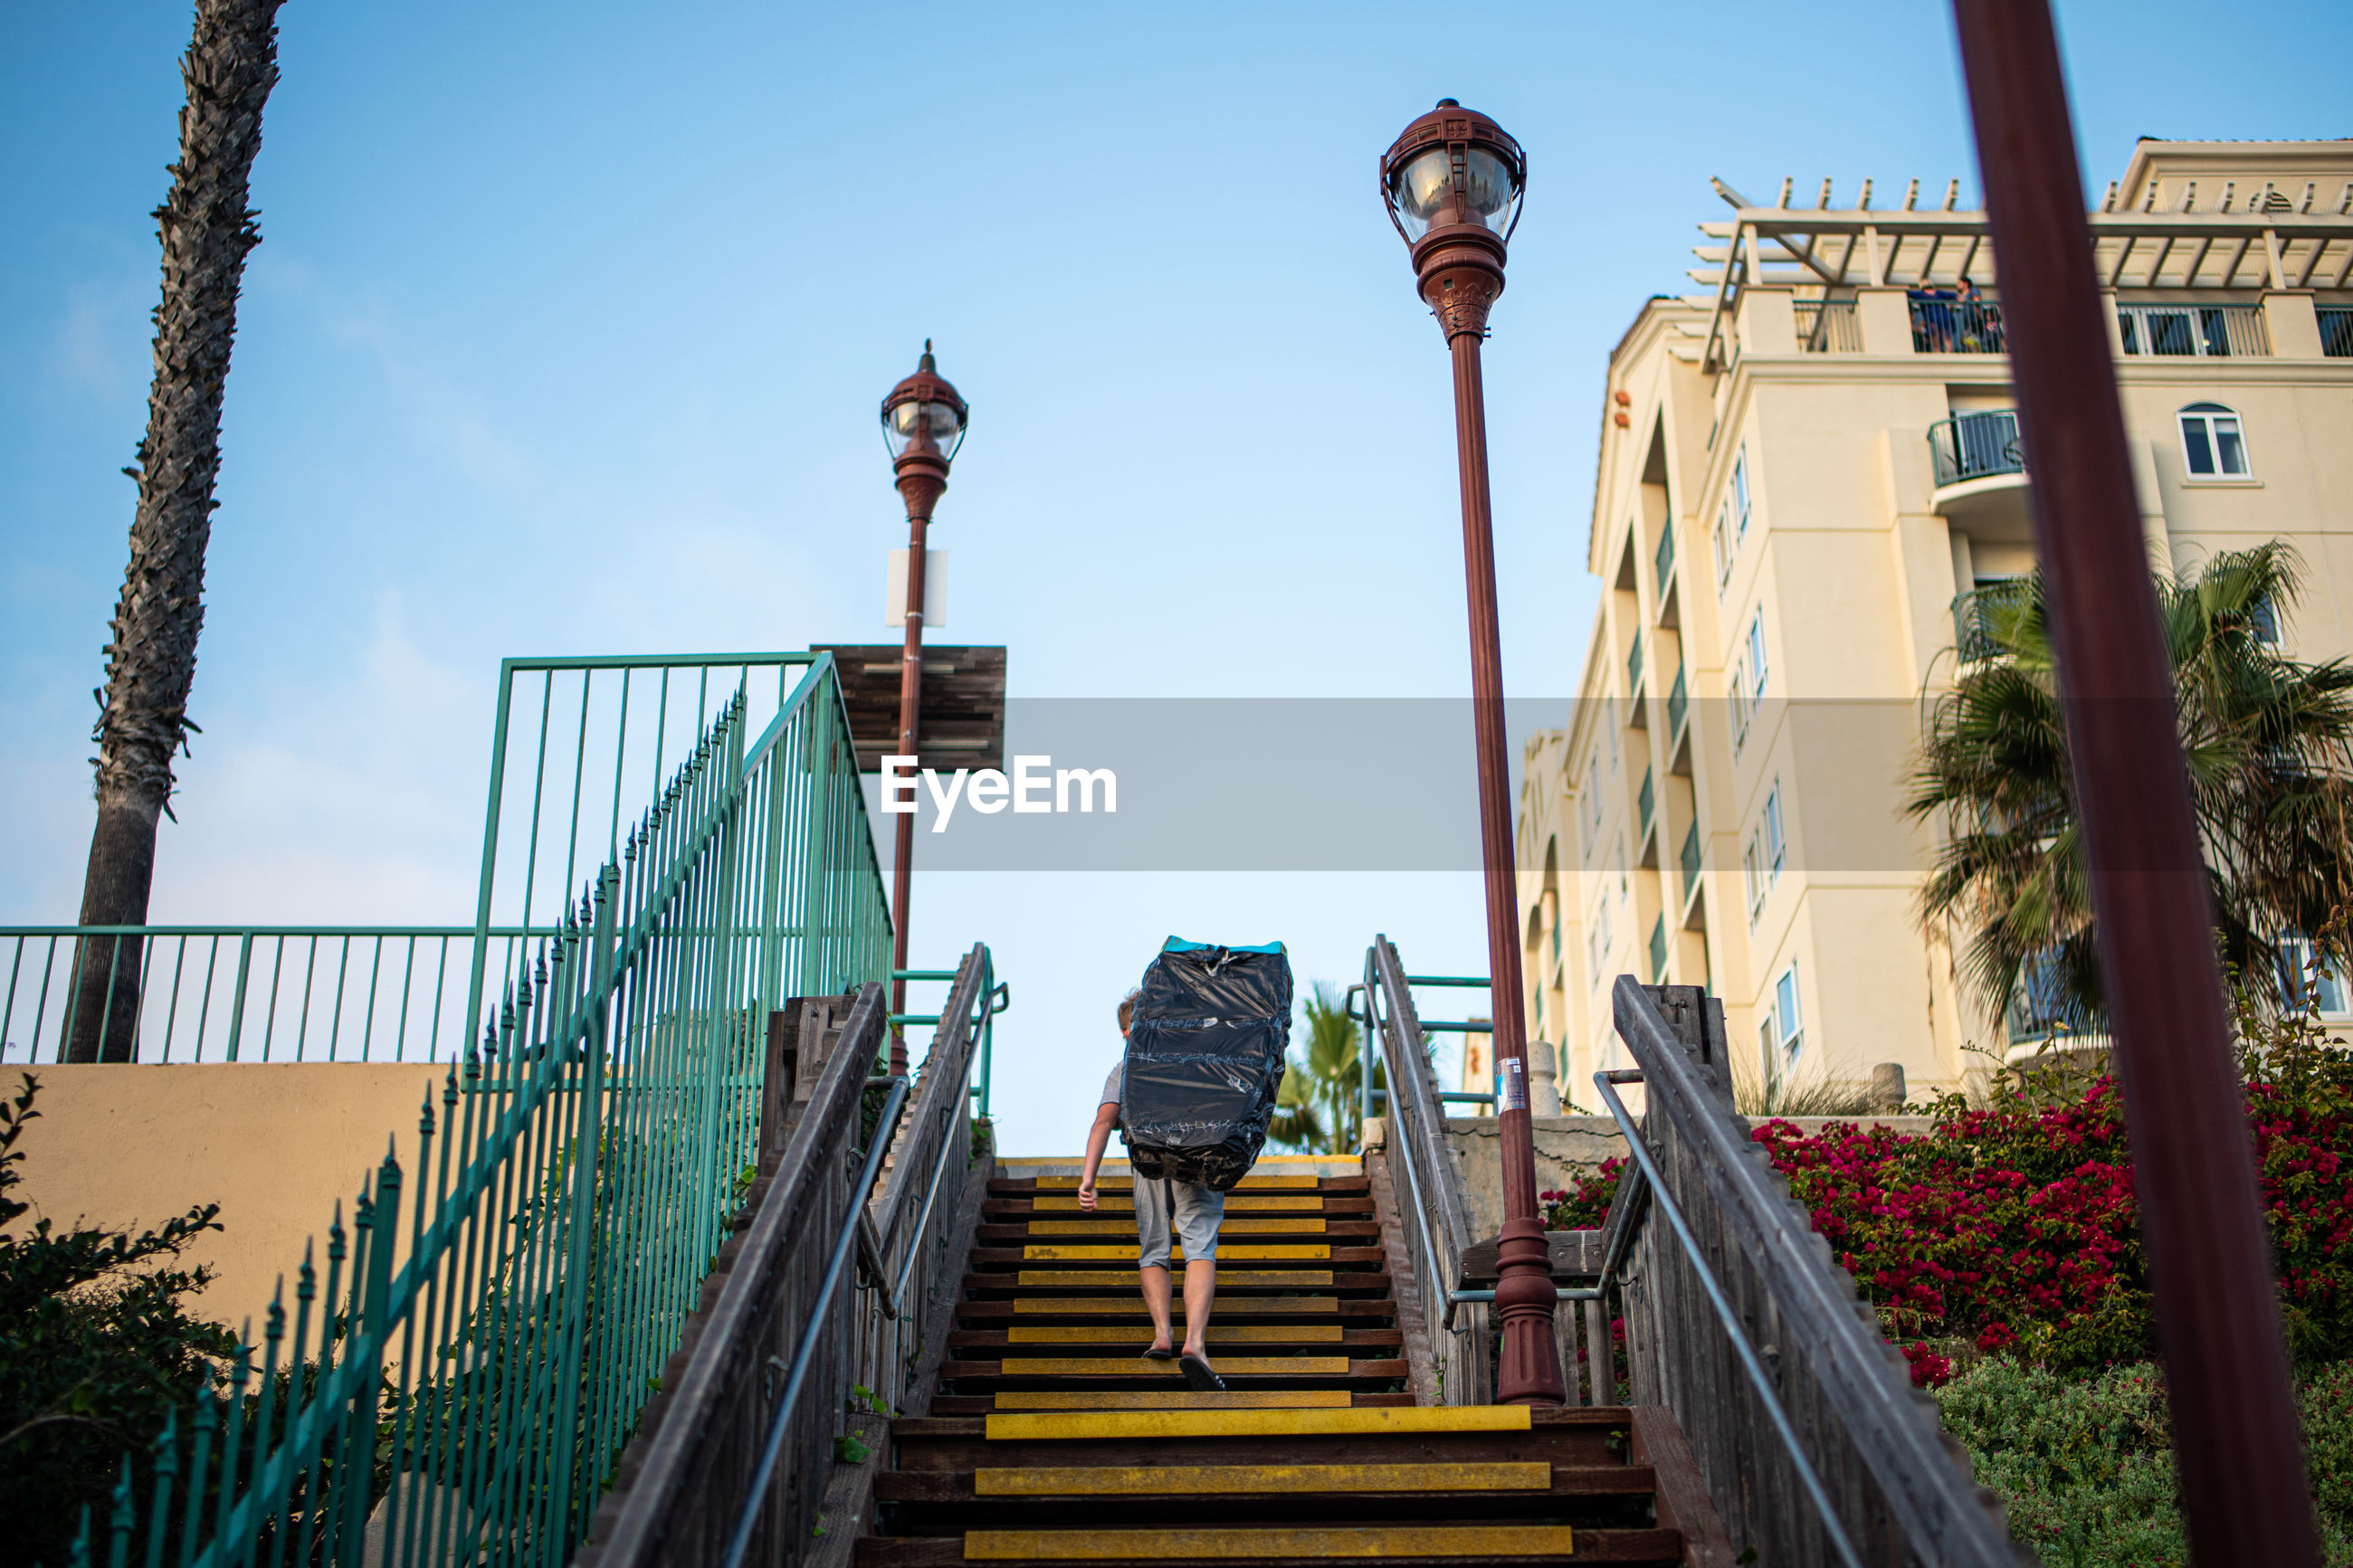 LOW ANGLE VIEW OF STEPS AND BUILDING AGAINST SKY